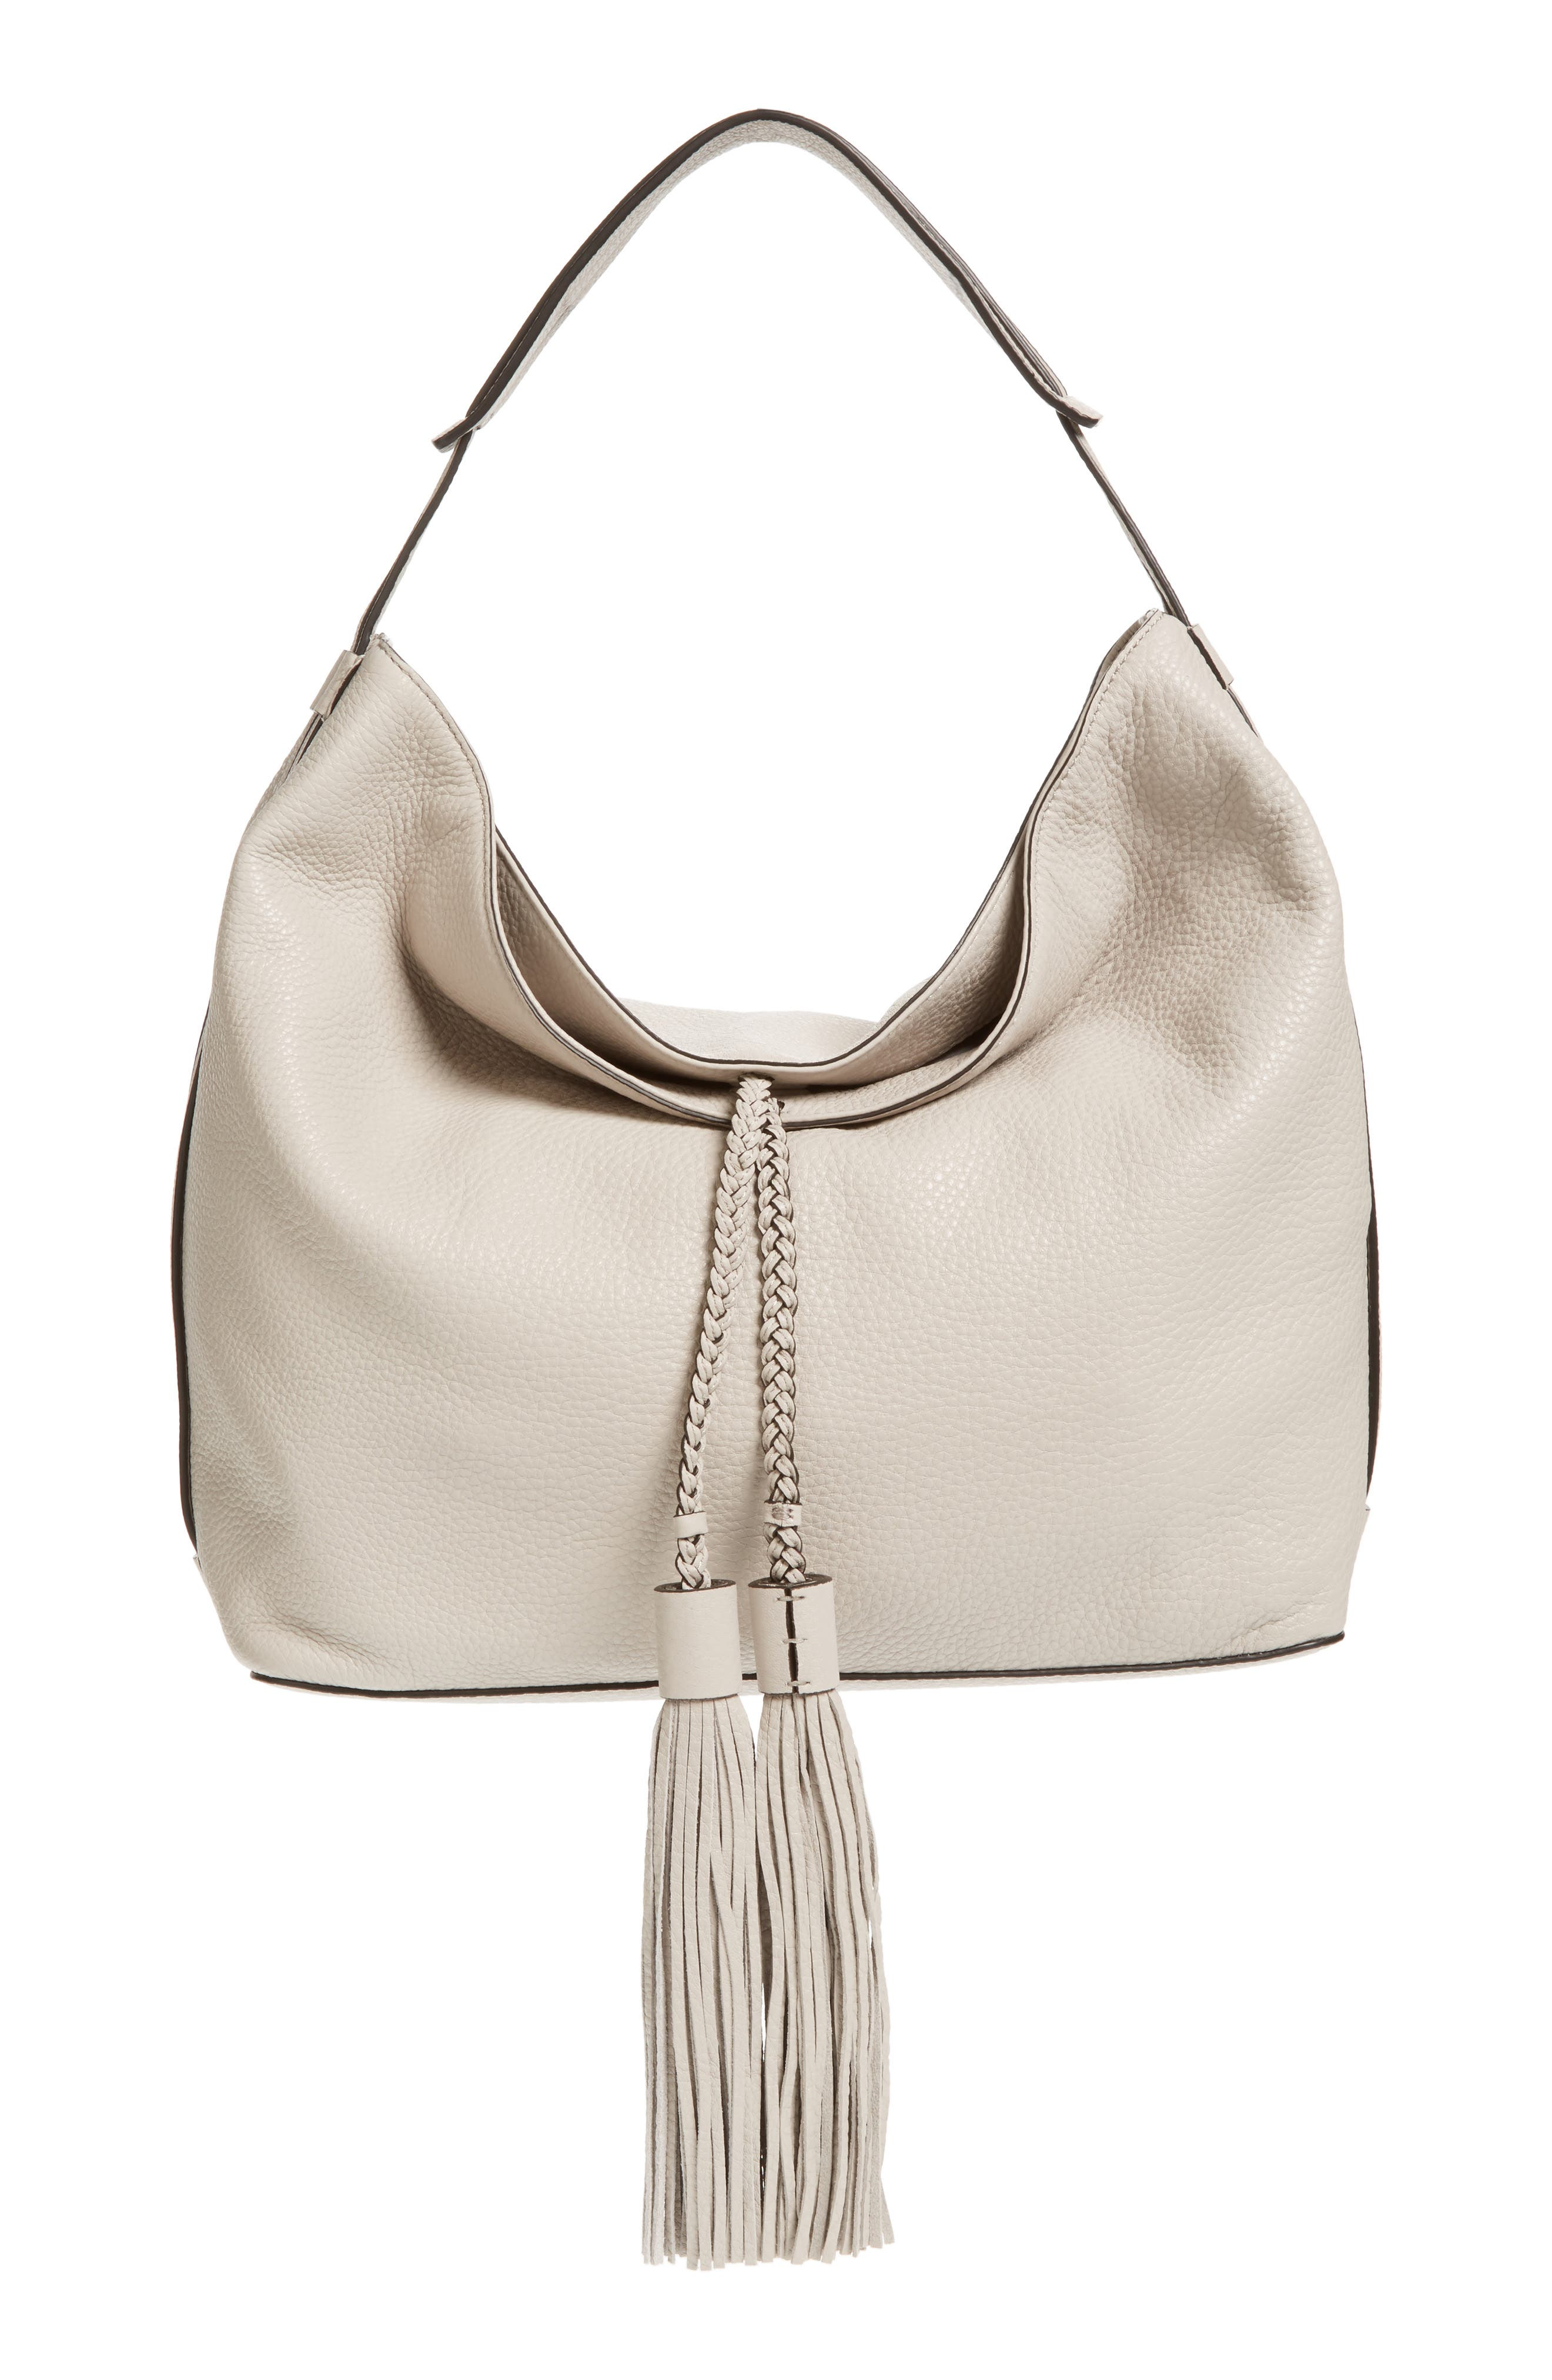 Alternate Image 1 Selected - Rebecca Minkoff 'Isobel' Tassel Leather Hobo